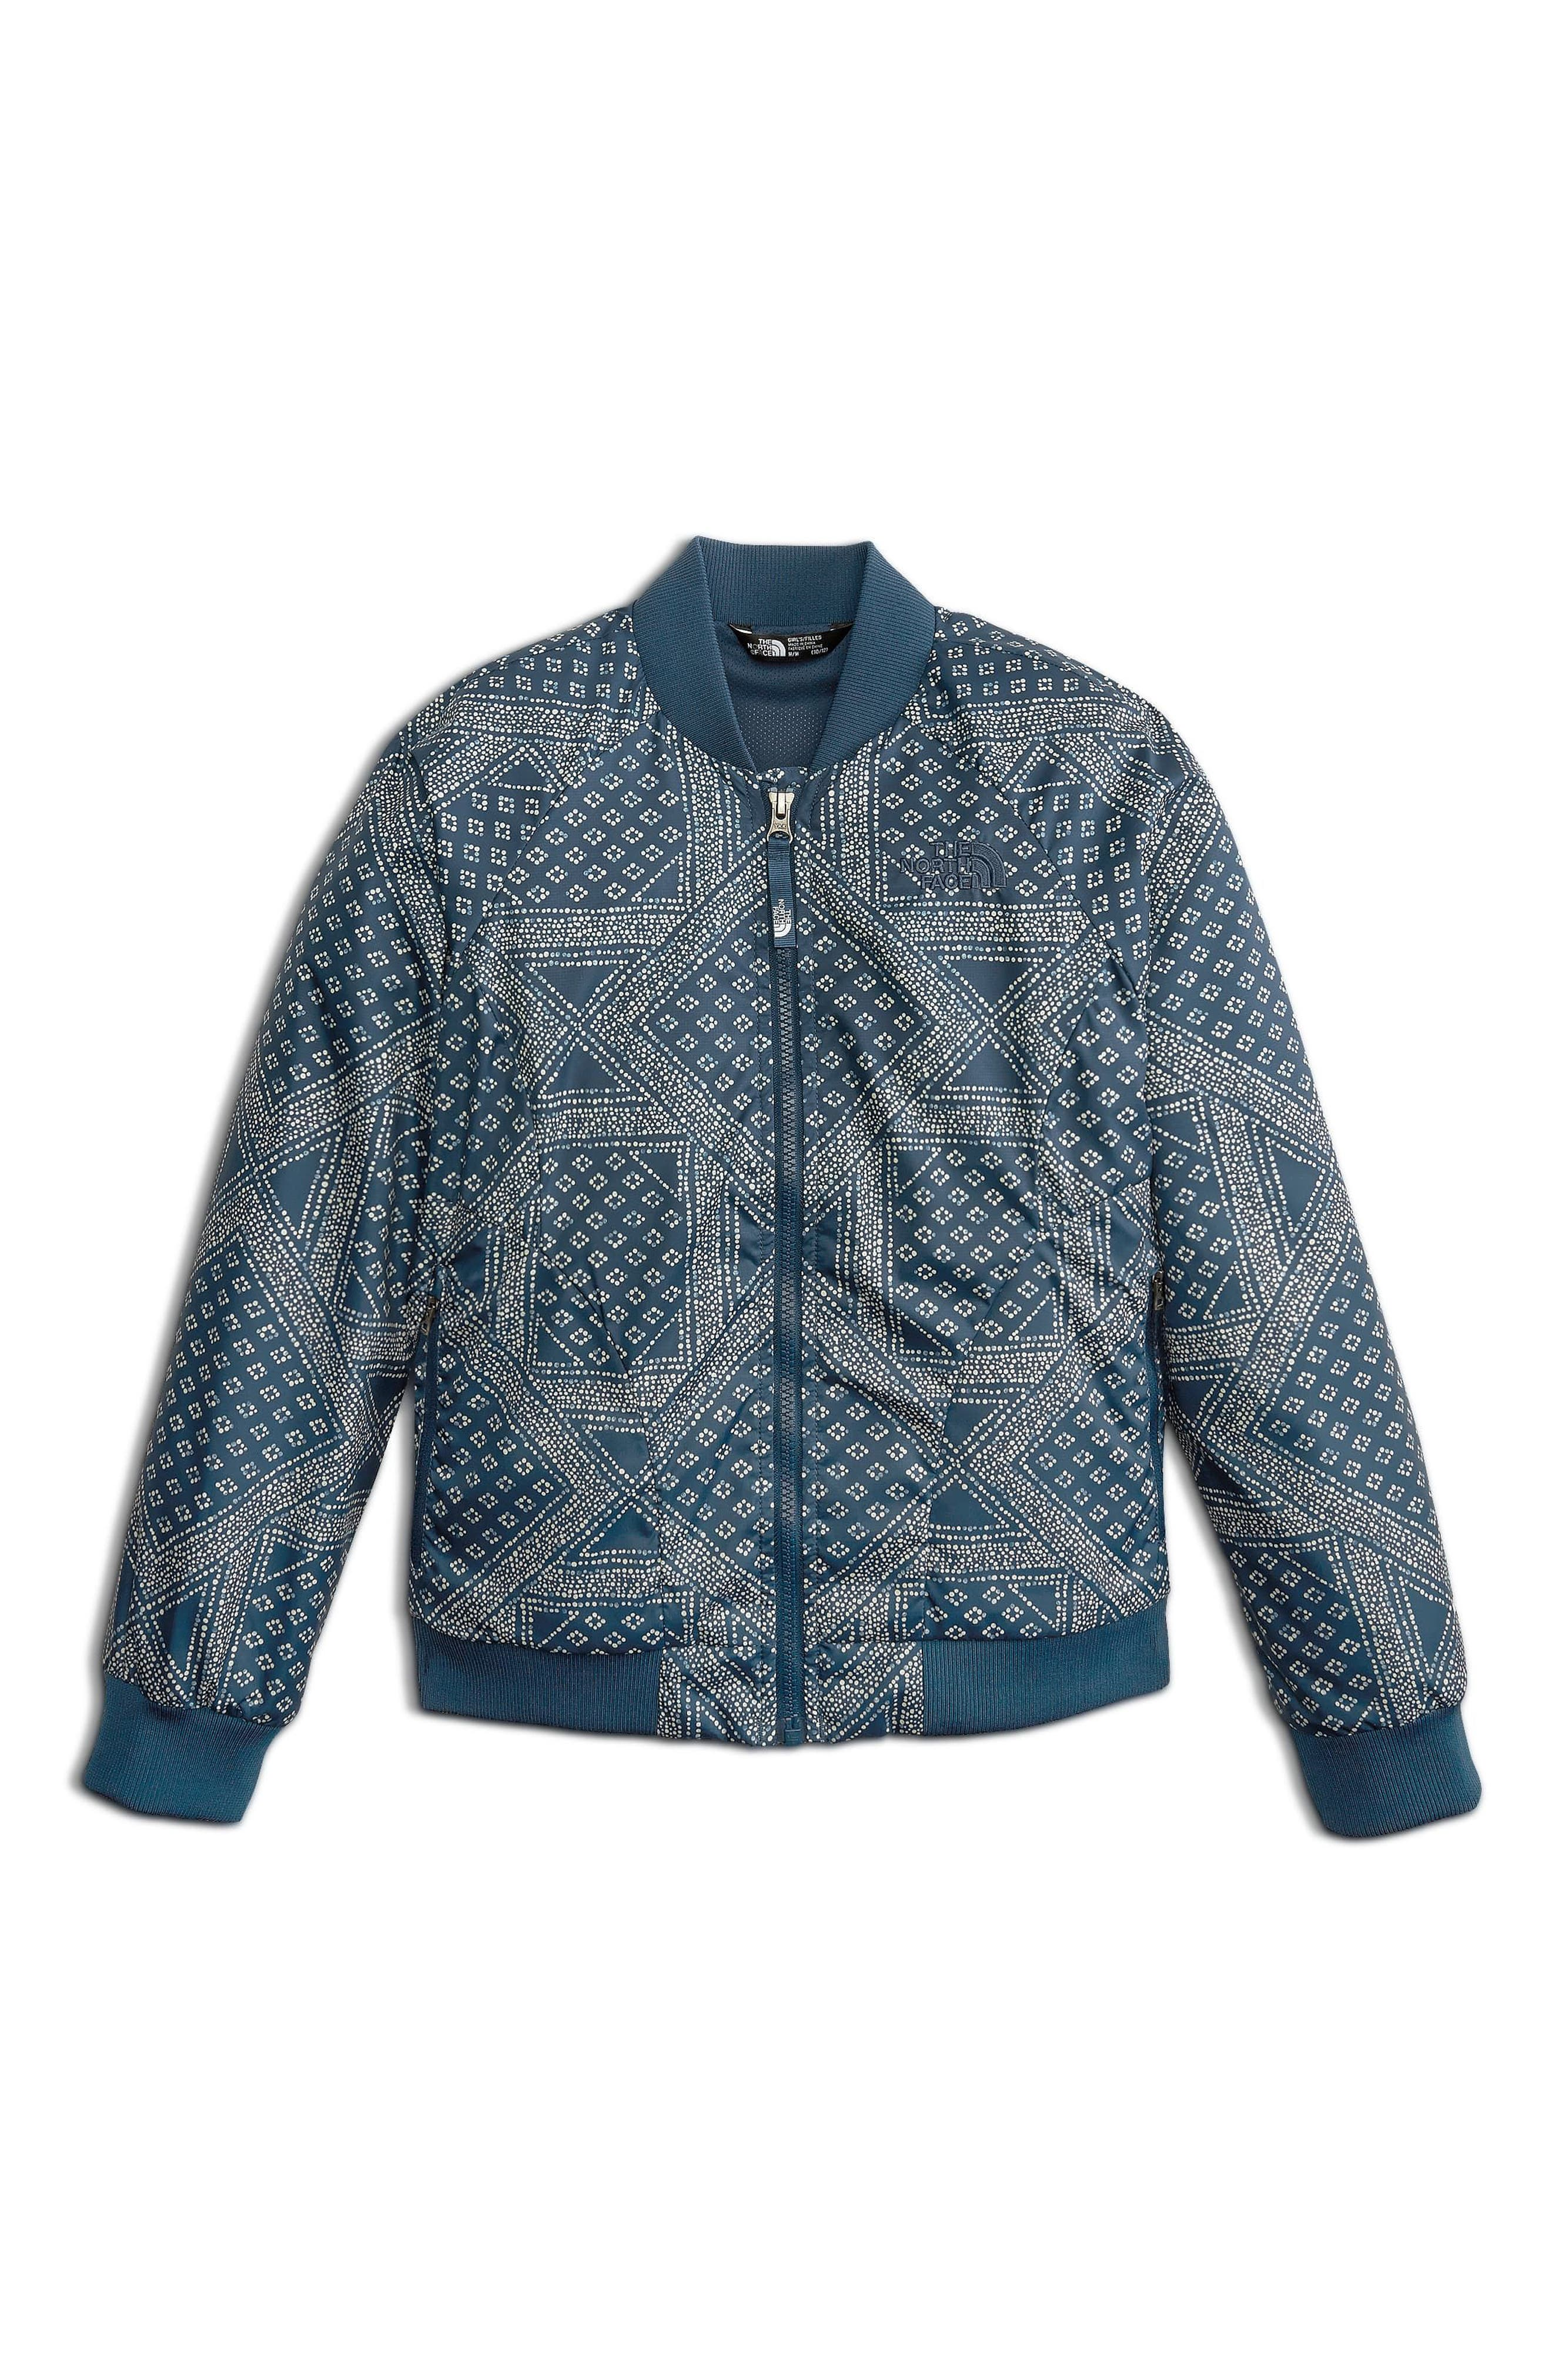 Flurry Wind Bomber Jacket,                         Main,                         color,